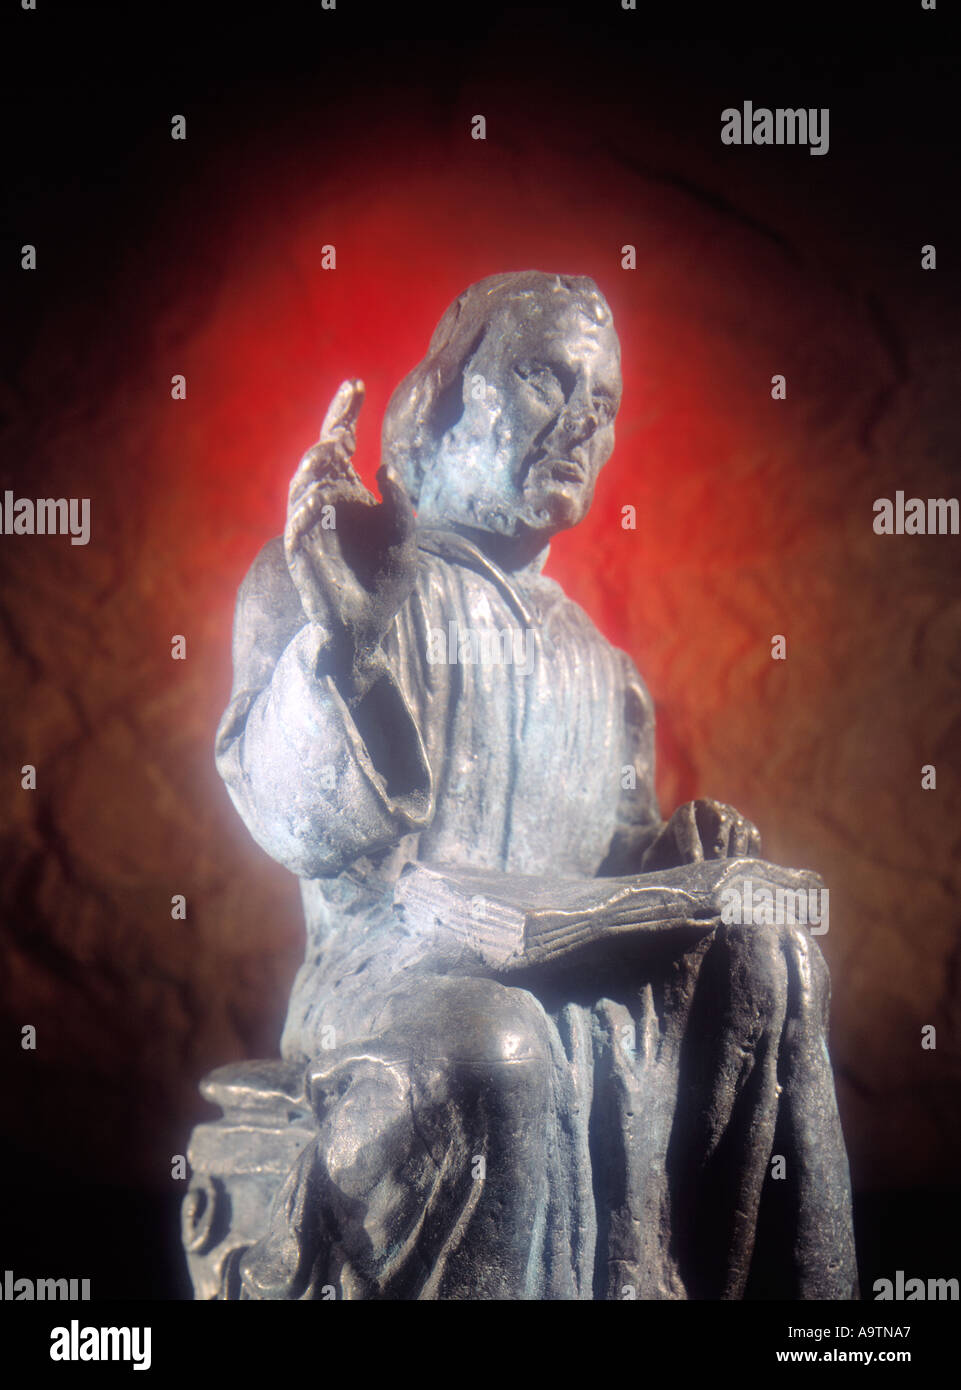 statue statuette of Martin Luther Lutheran church founder 15th Stock     statue statuette of Martin Luther Lutheran church founder 15th century 16th  century copy space